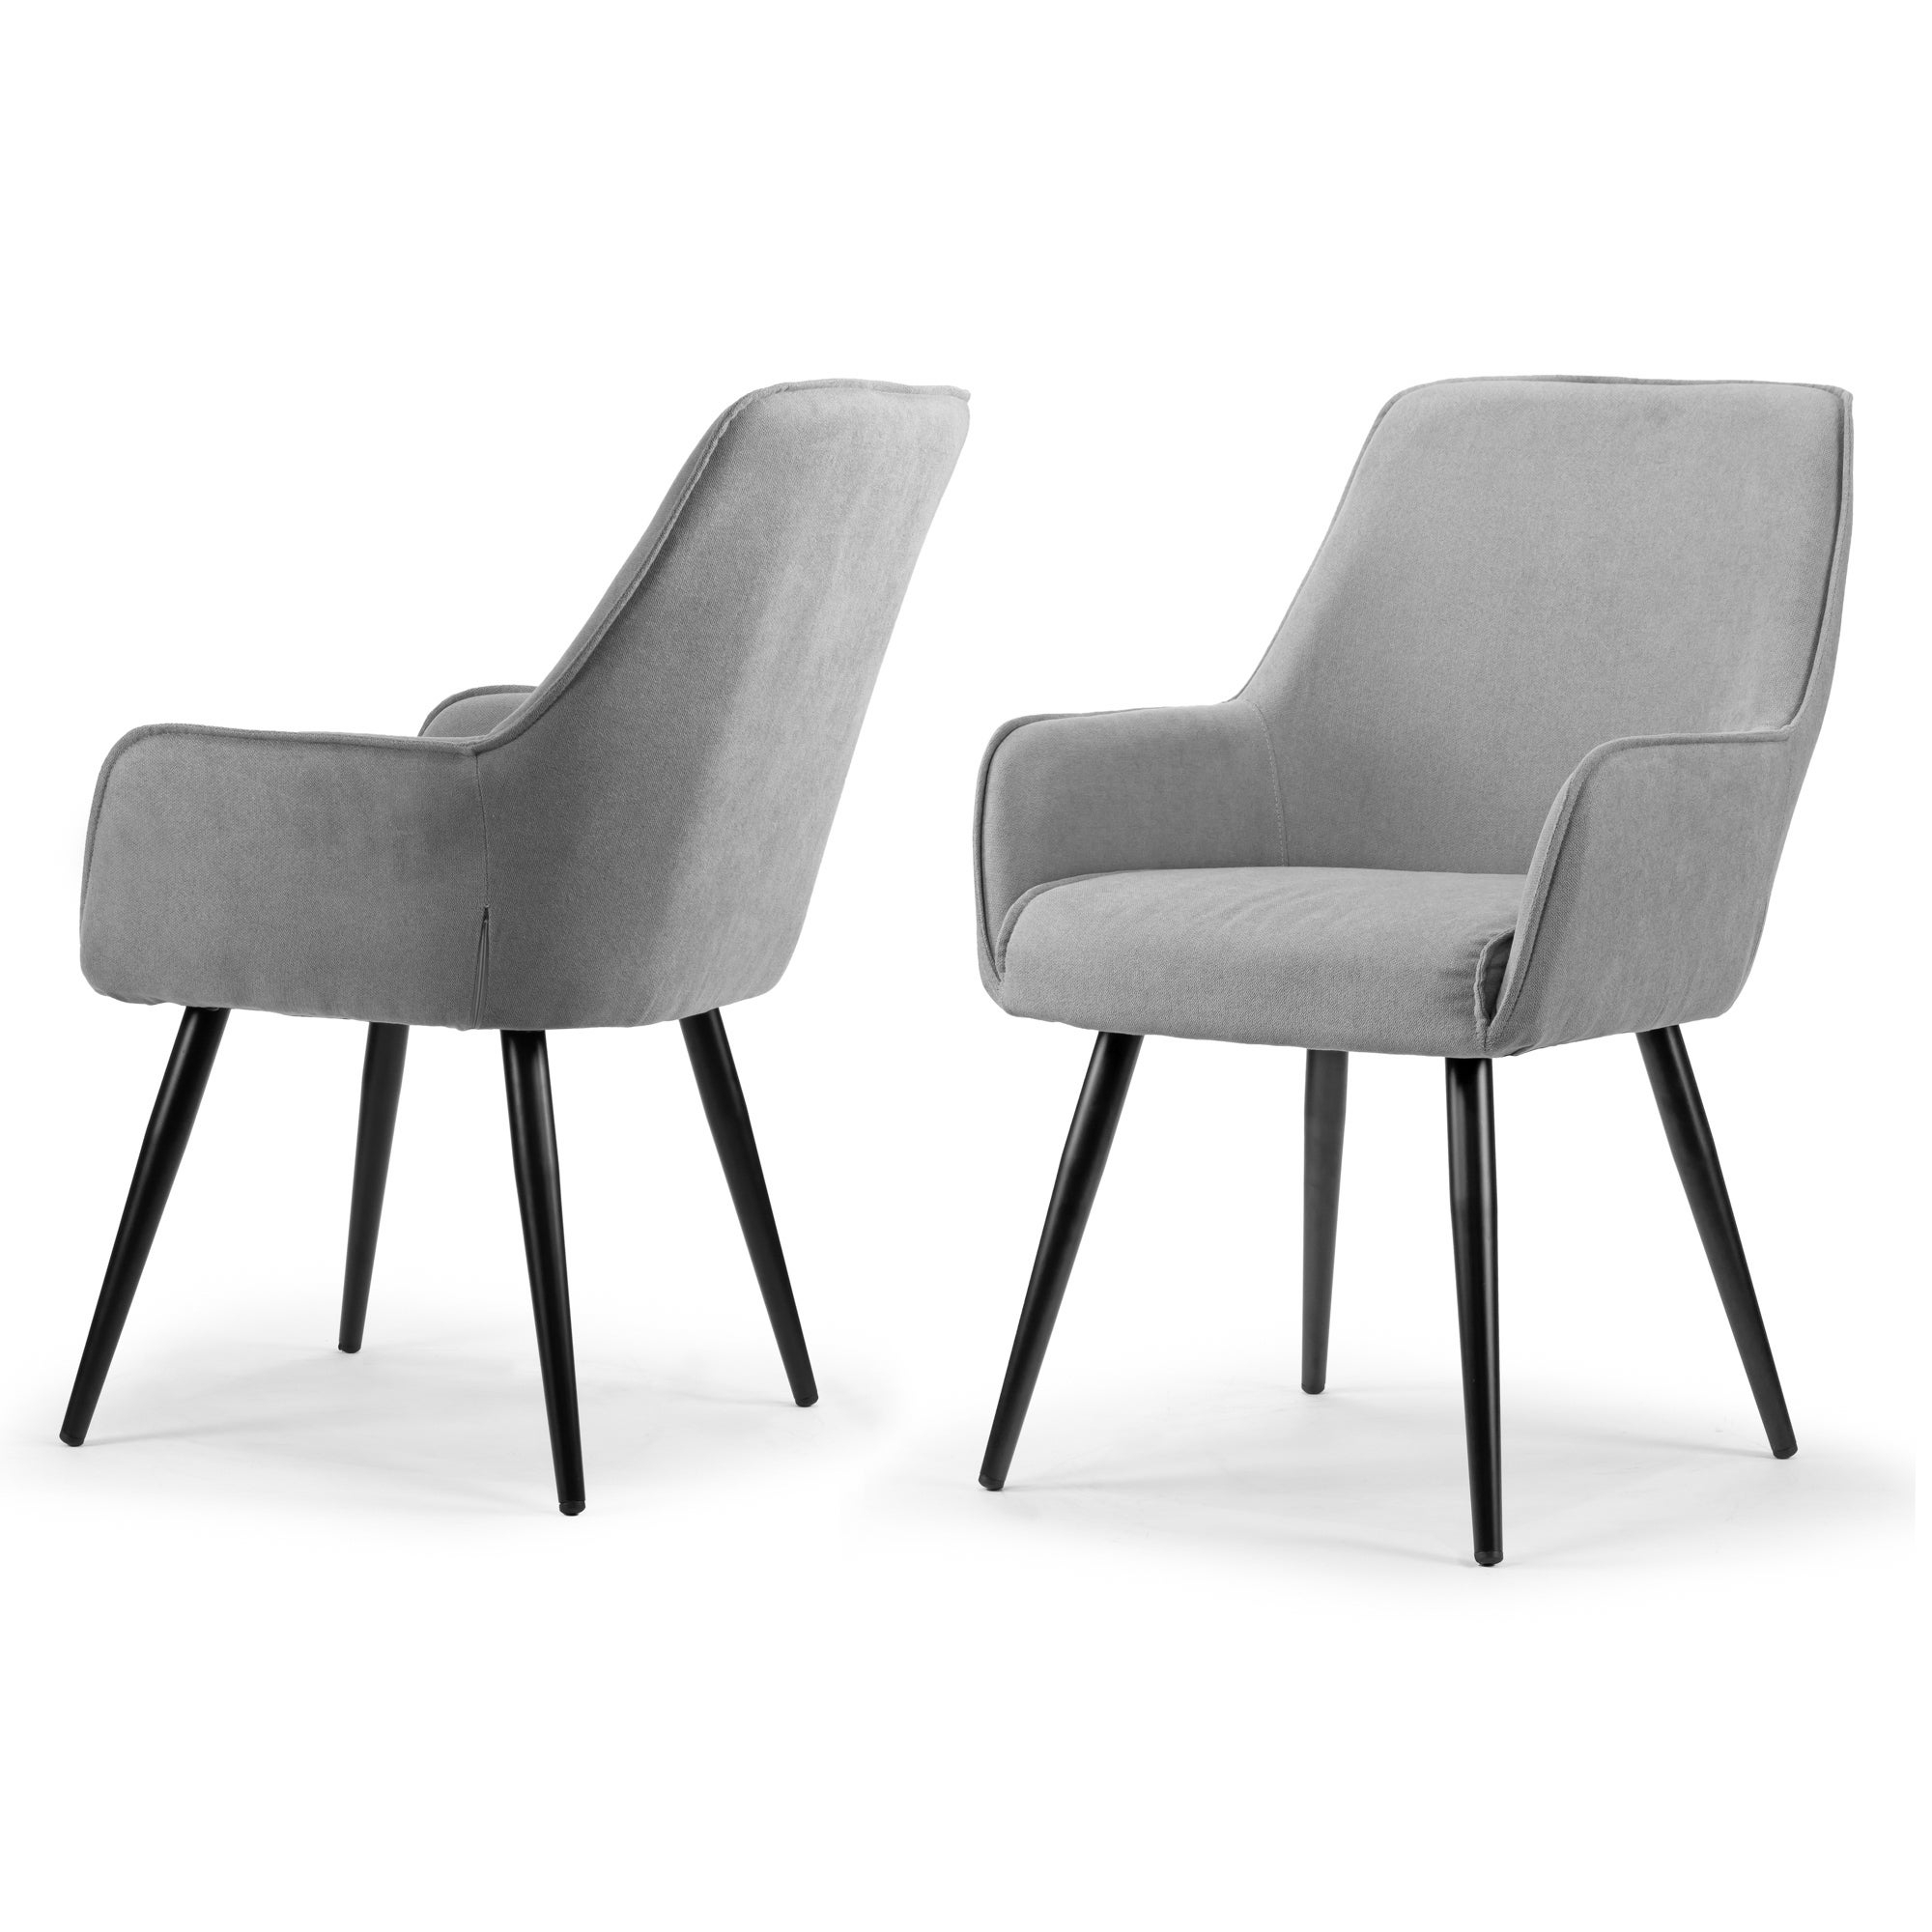 Most Up To Date Set Of 2 Amir Grey Dining Chair With Black Metal Legs And Square Arms Pertaining To Amir 5 Piece Solid Wood Dining Sets (Set Of 5) (View 17 of 20)